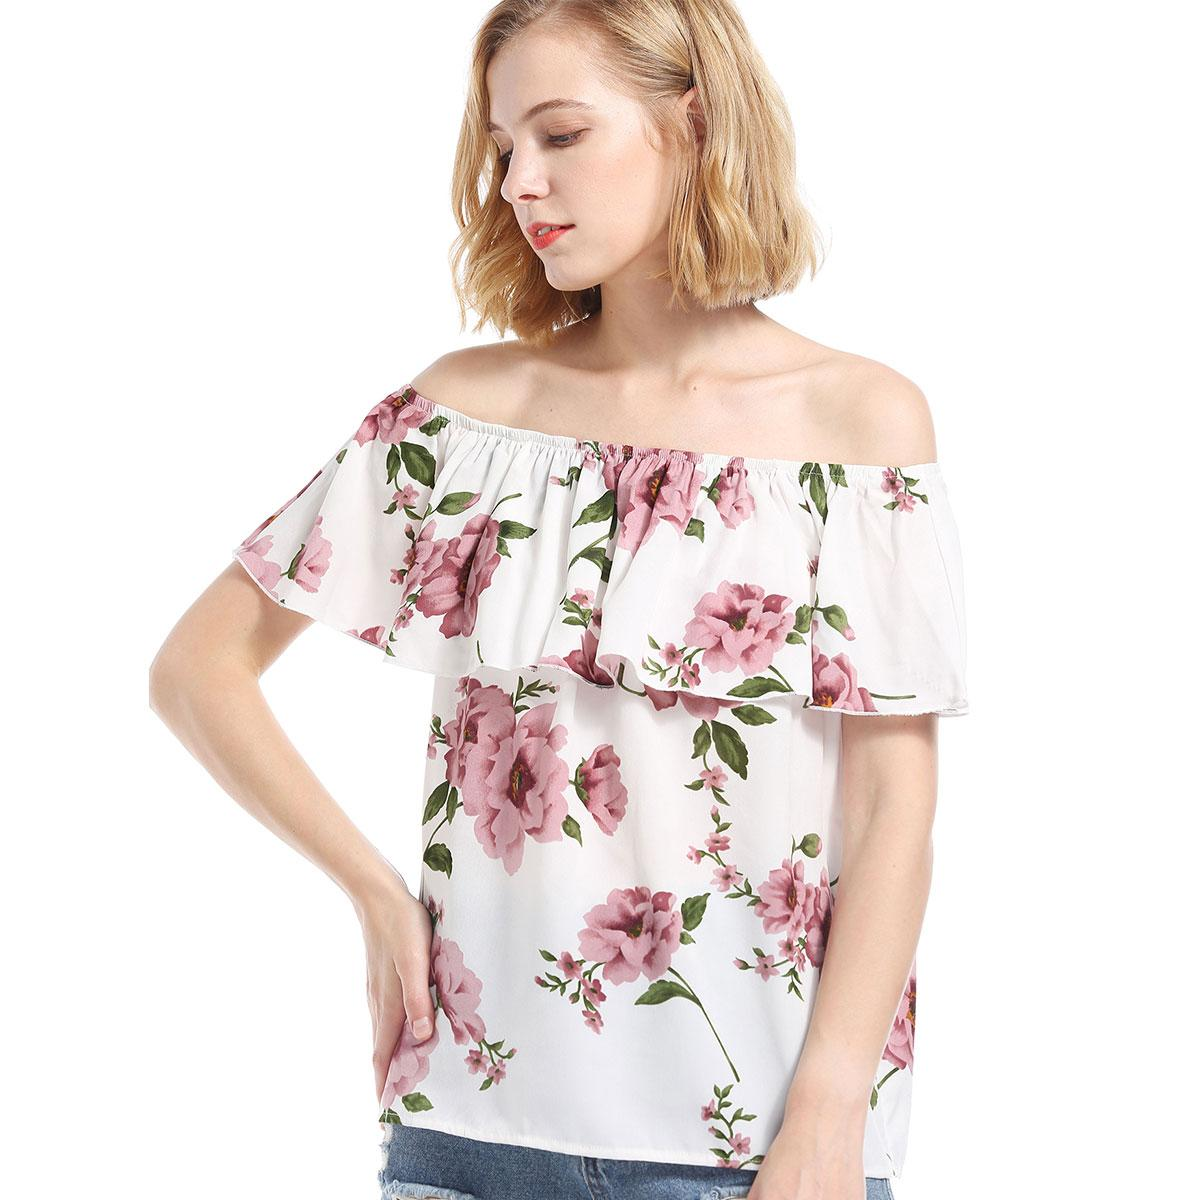 a522b31b0f92dc 2019 2018 Summer Women Casual Floral Print Chiffon Blouse Ruffle Slash Neck Short  Sleeve Beach Holiday T Shirt Loose Shirt Tops From Hengytrade